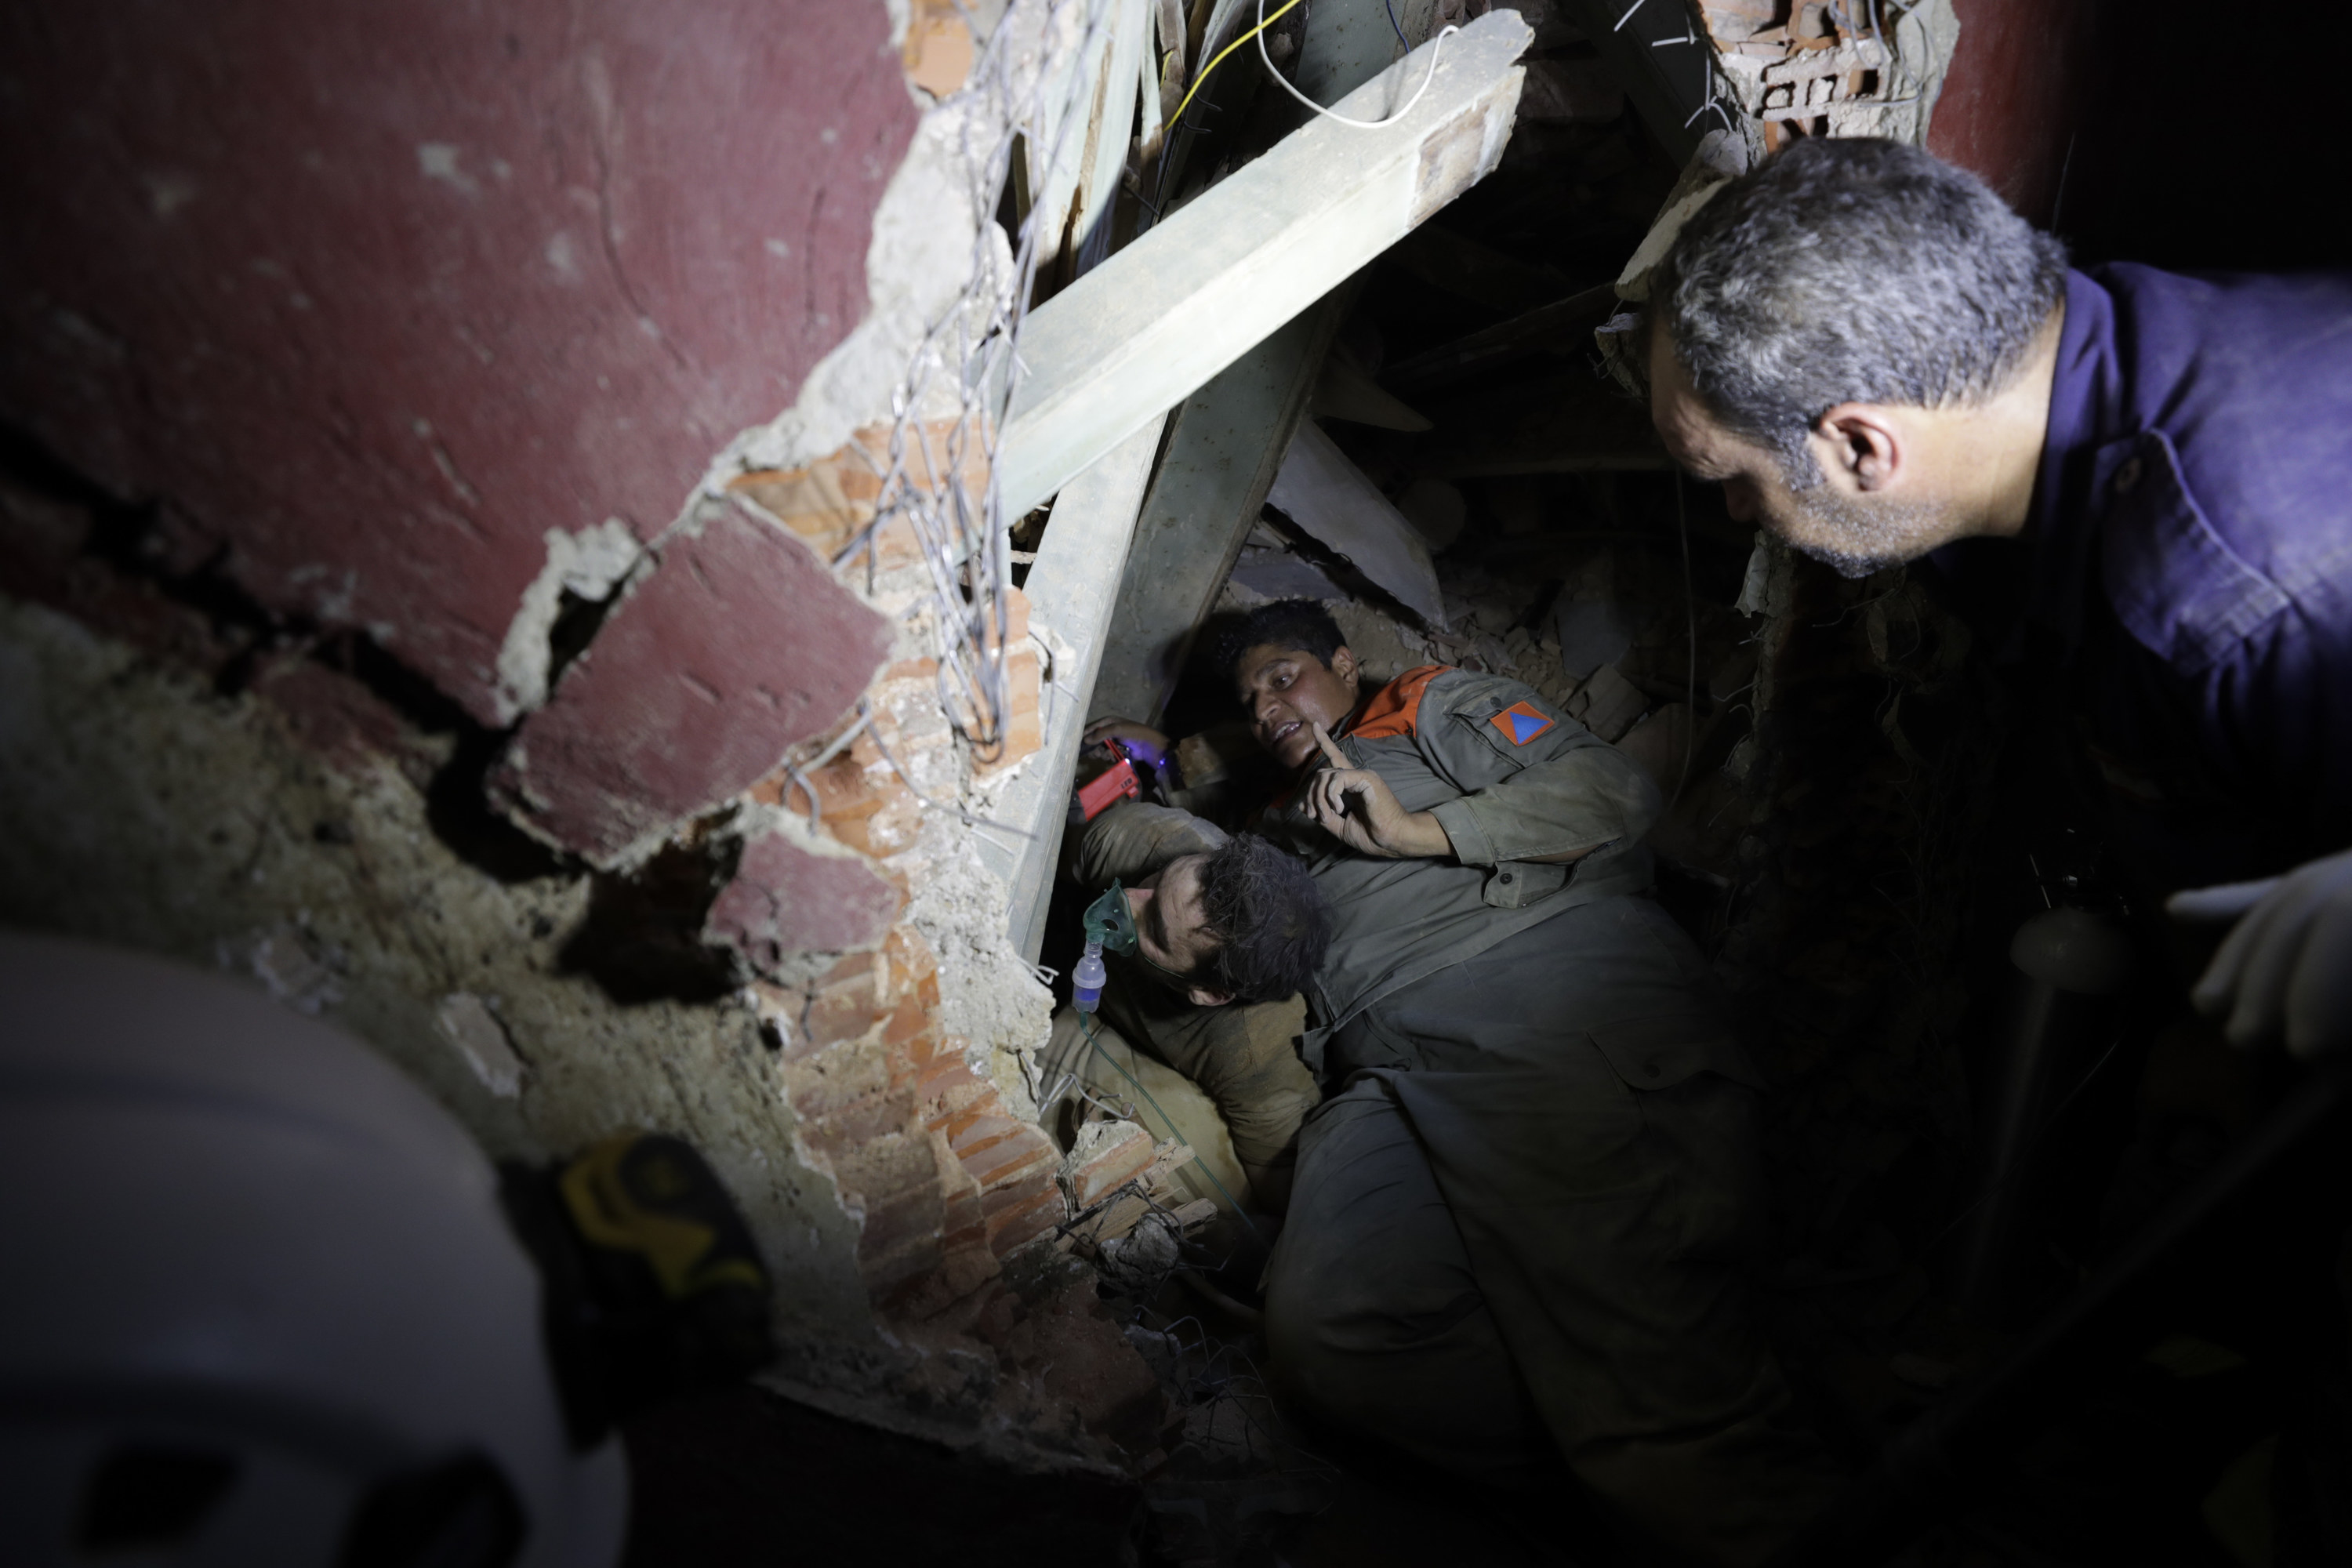 Two soldiers search in a destroyed house for survivors with a flashlight at night